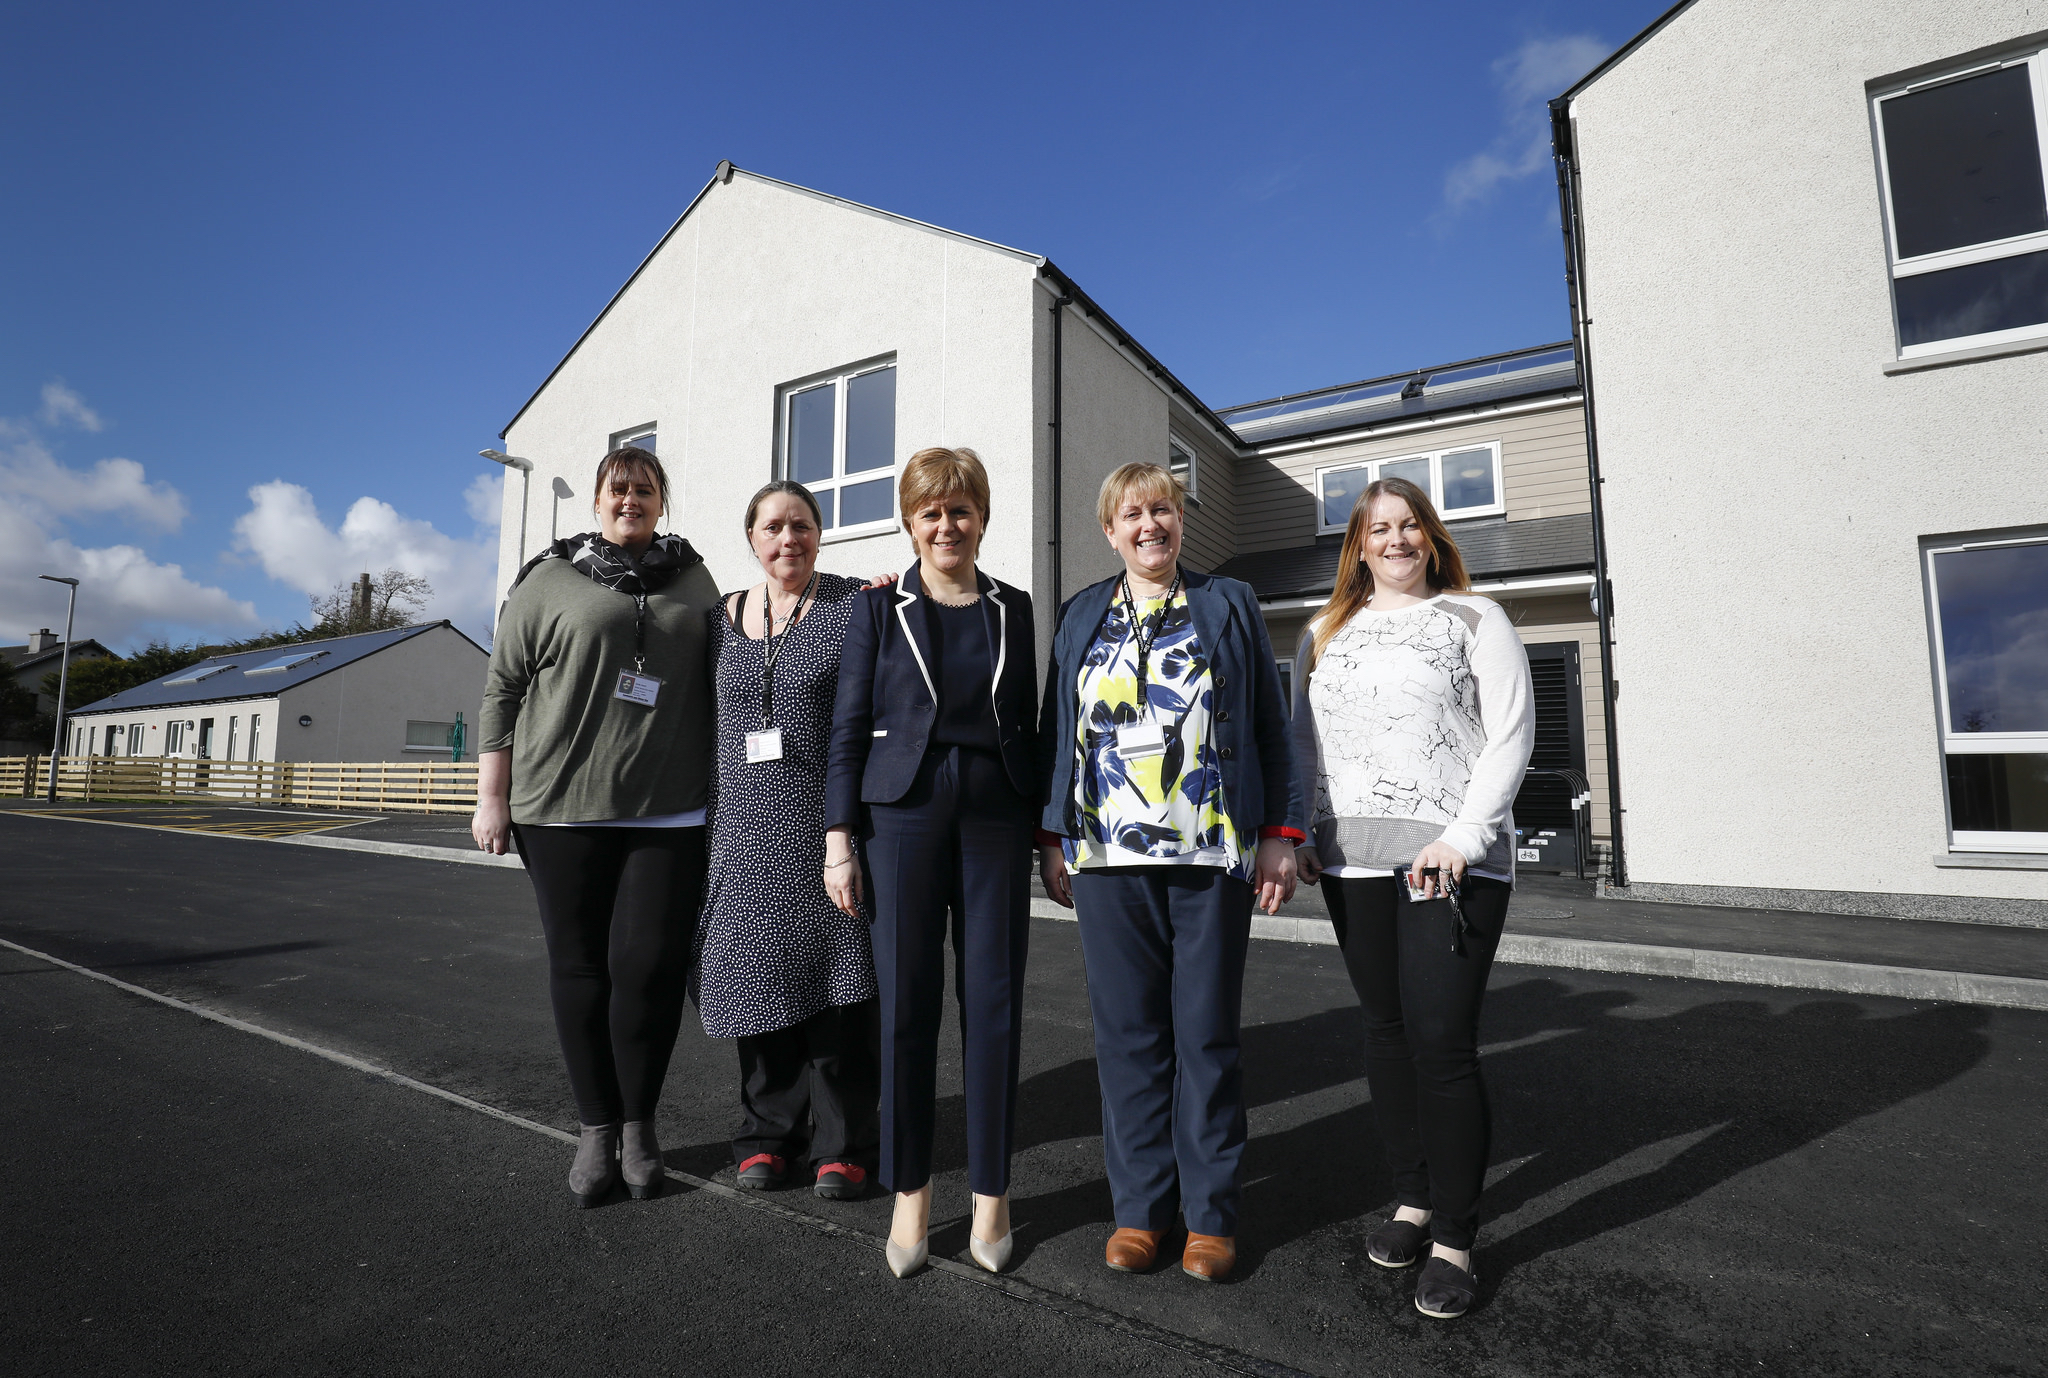 Nicola Sturgeon visited the Ardseileach Centre in Stornoway to meet staff and service users